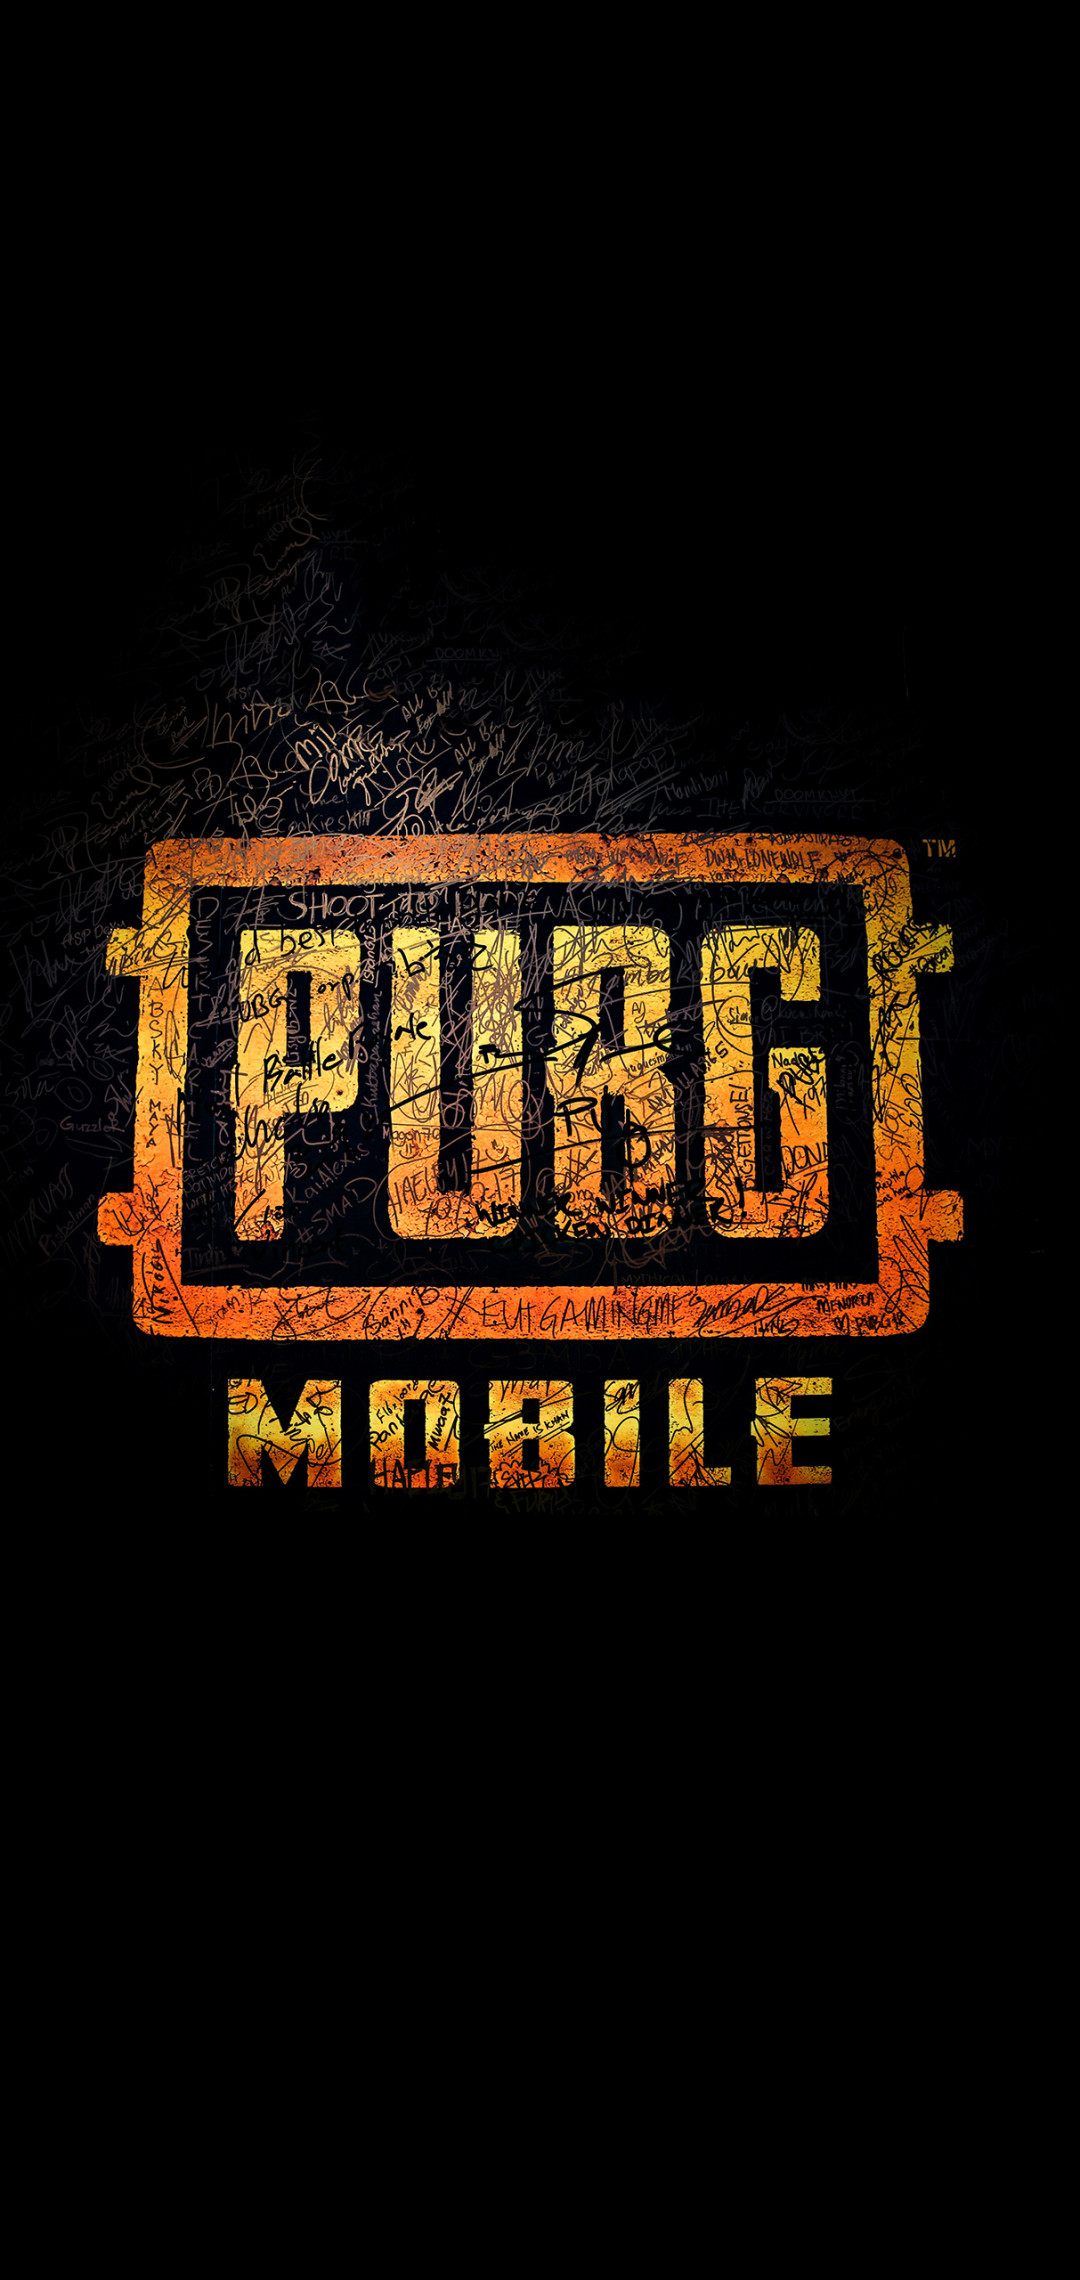 Pubg Wallpaper Background Download - Pubg Mobile Iphone Xs Max , HD Wallpaper & Backgrounds